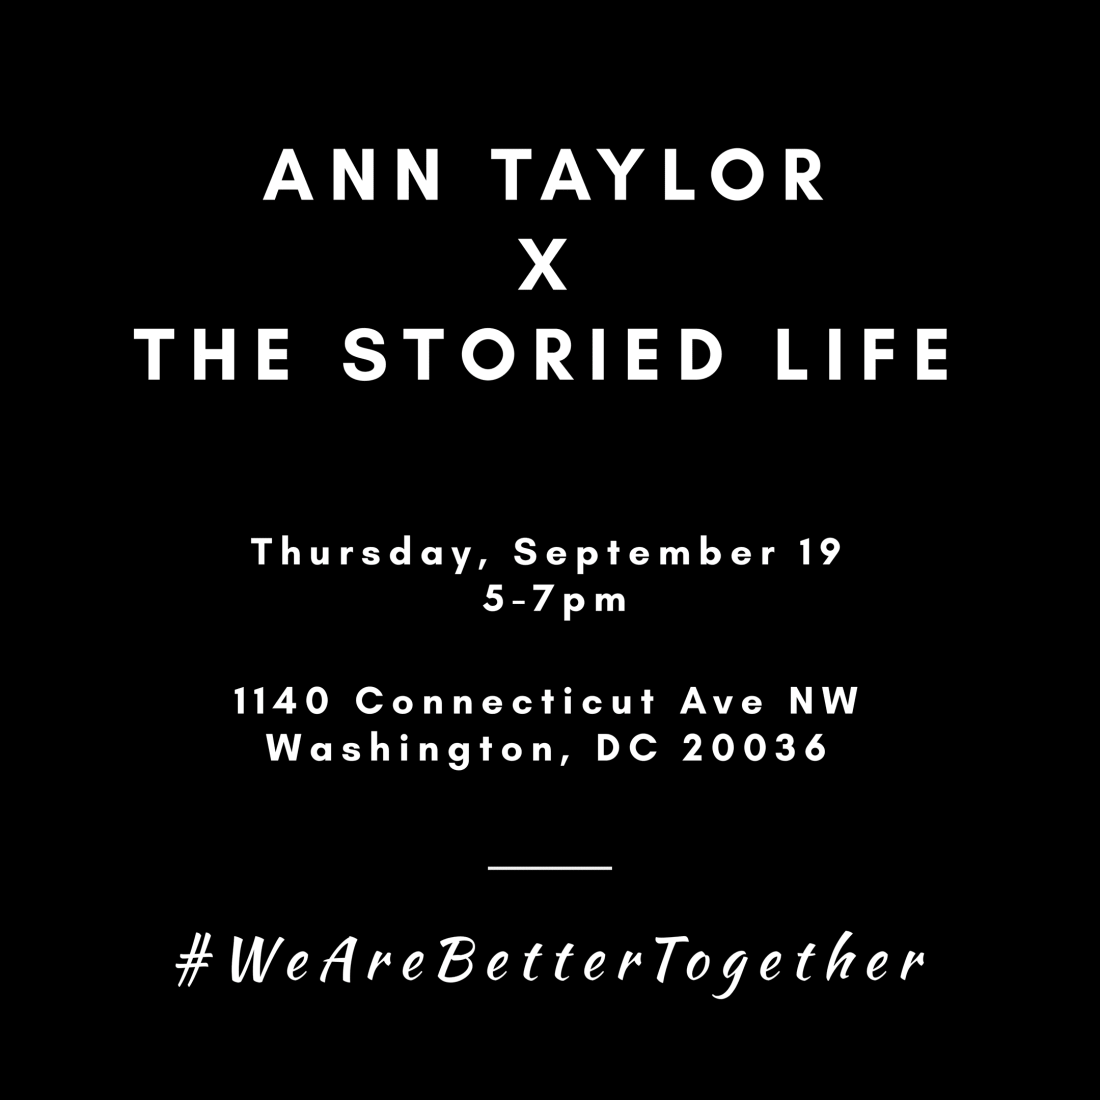 Ann-Taylor-x-The-Storied-Life-We-Are-Better-Together-DC-Event-IMG1